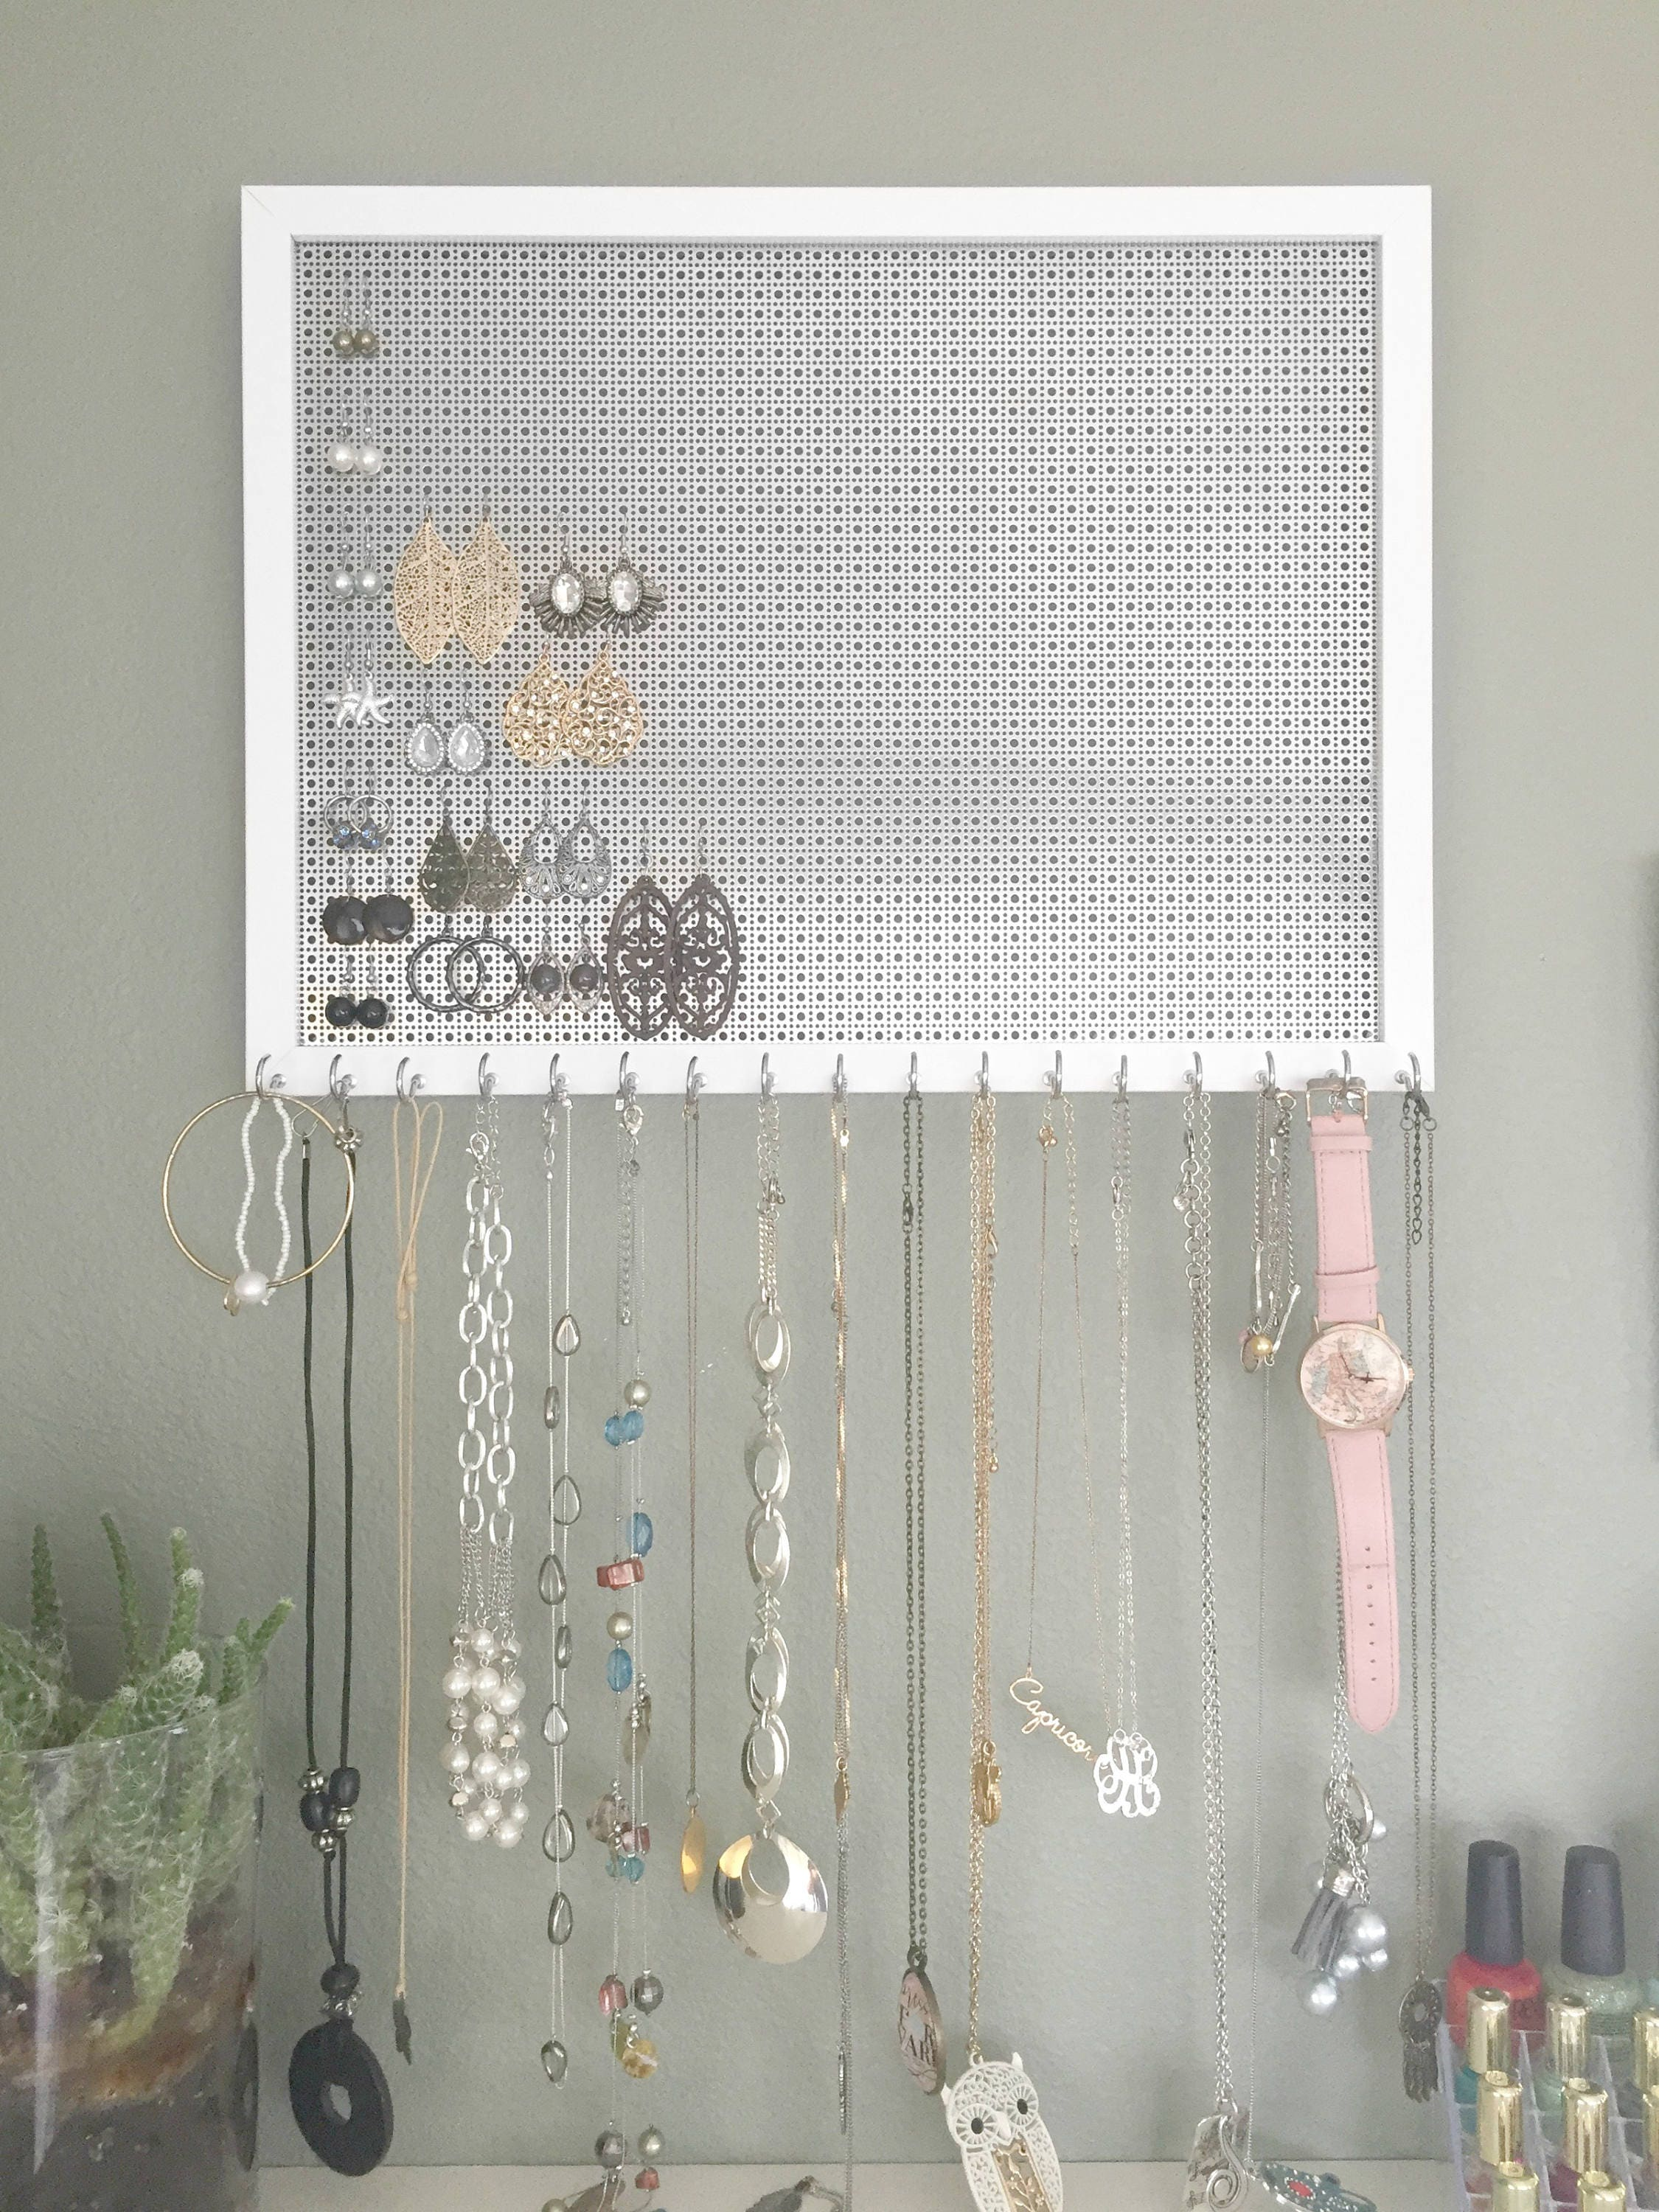 13x17 Ultimate Hanging Jewelry Organizer - White Frame - Silver ...